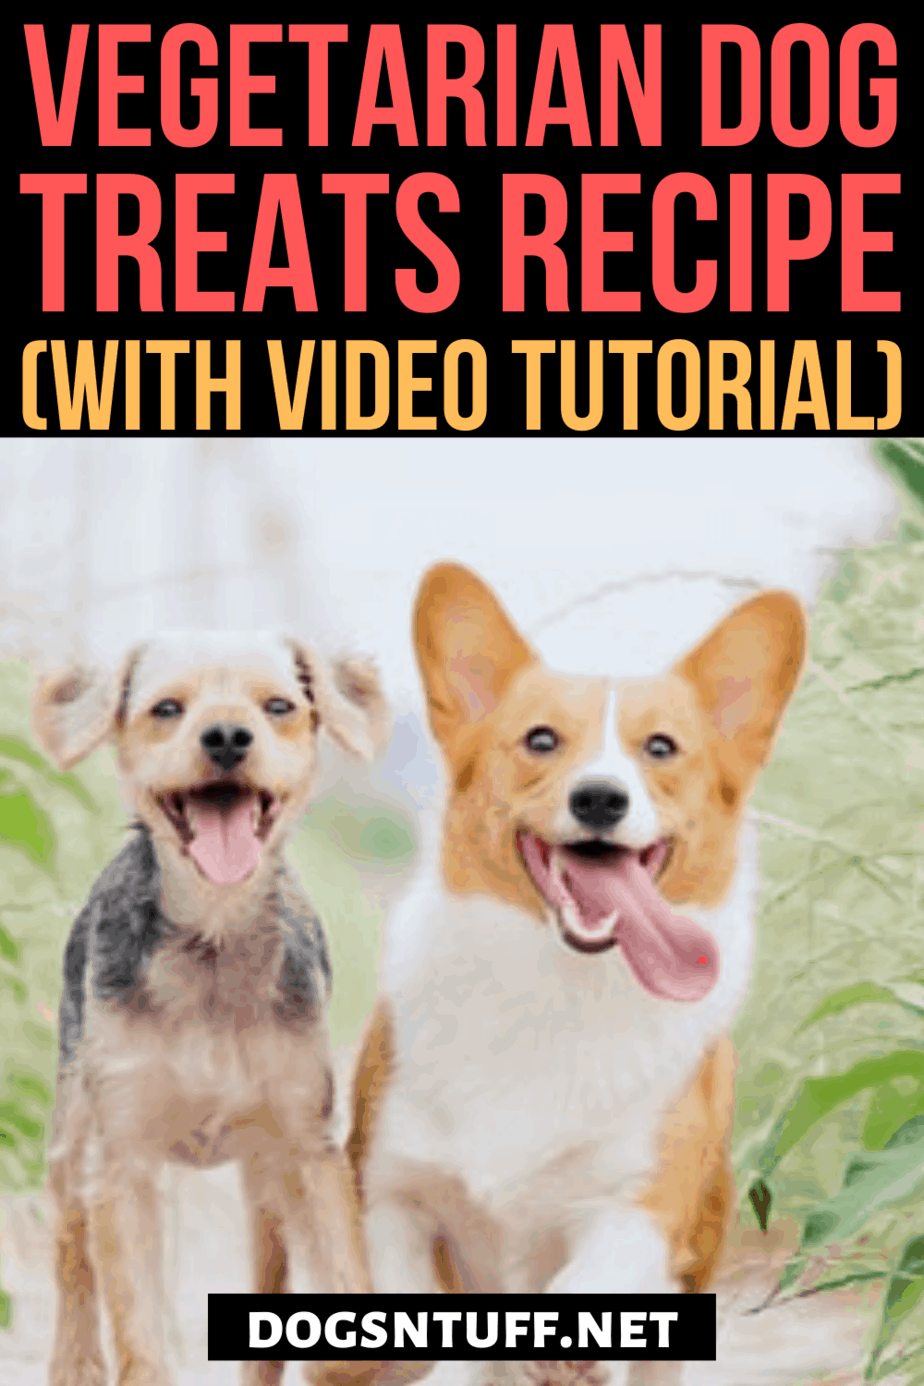 Tasty Hypoallergenic Dog Treats for Dogs with Allergies